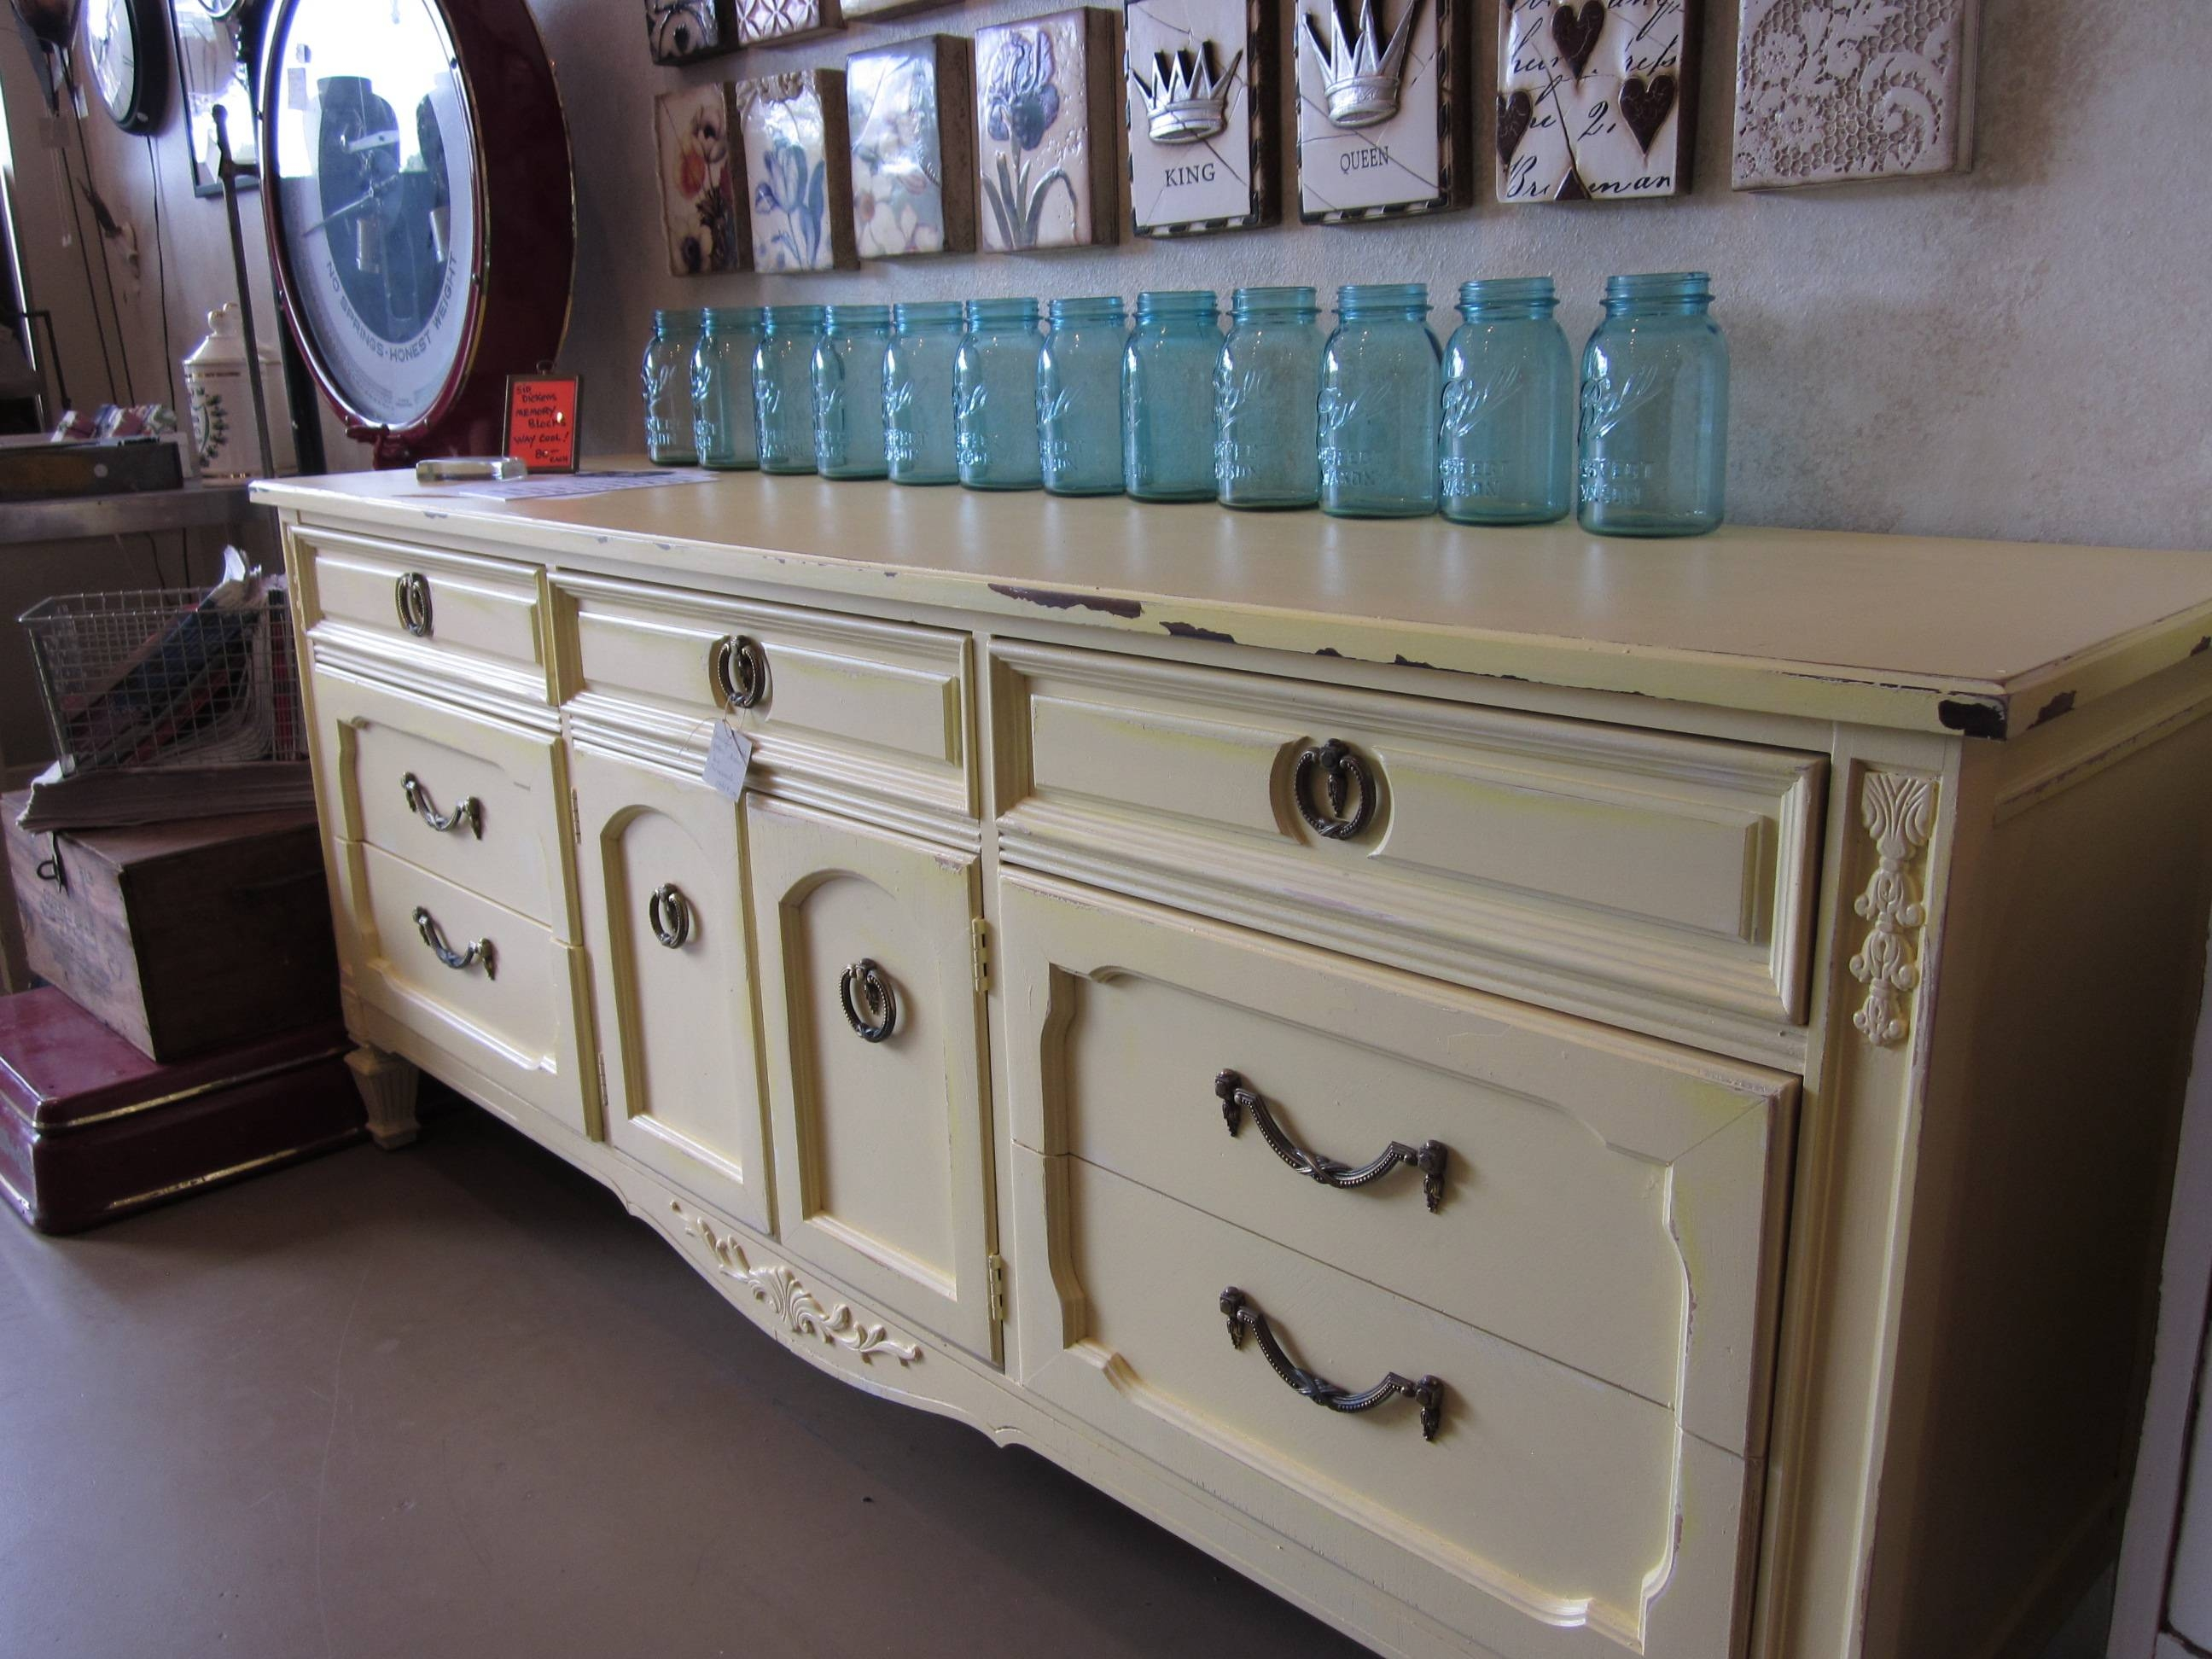 New Arrival- Thomasville Buffet/sideboard (Sold) | Paper Street Market pertaining to Thomasville Sideboards (Image 12 of 15)